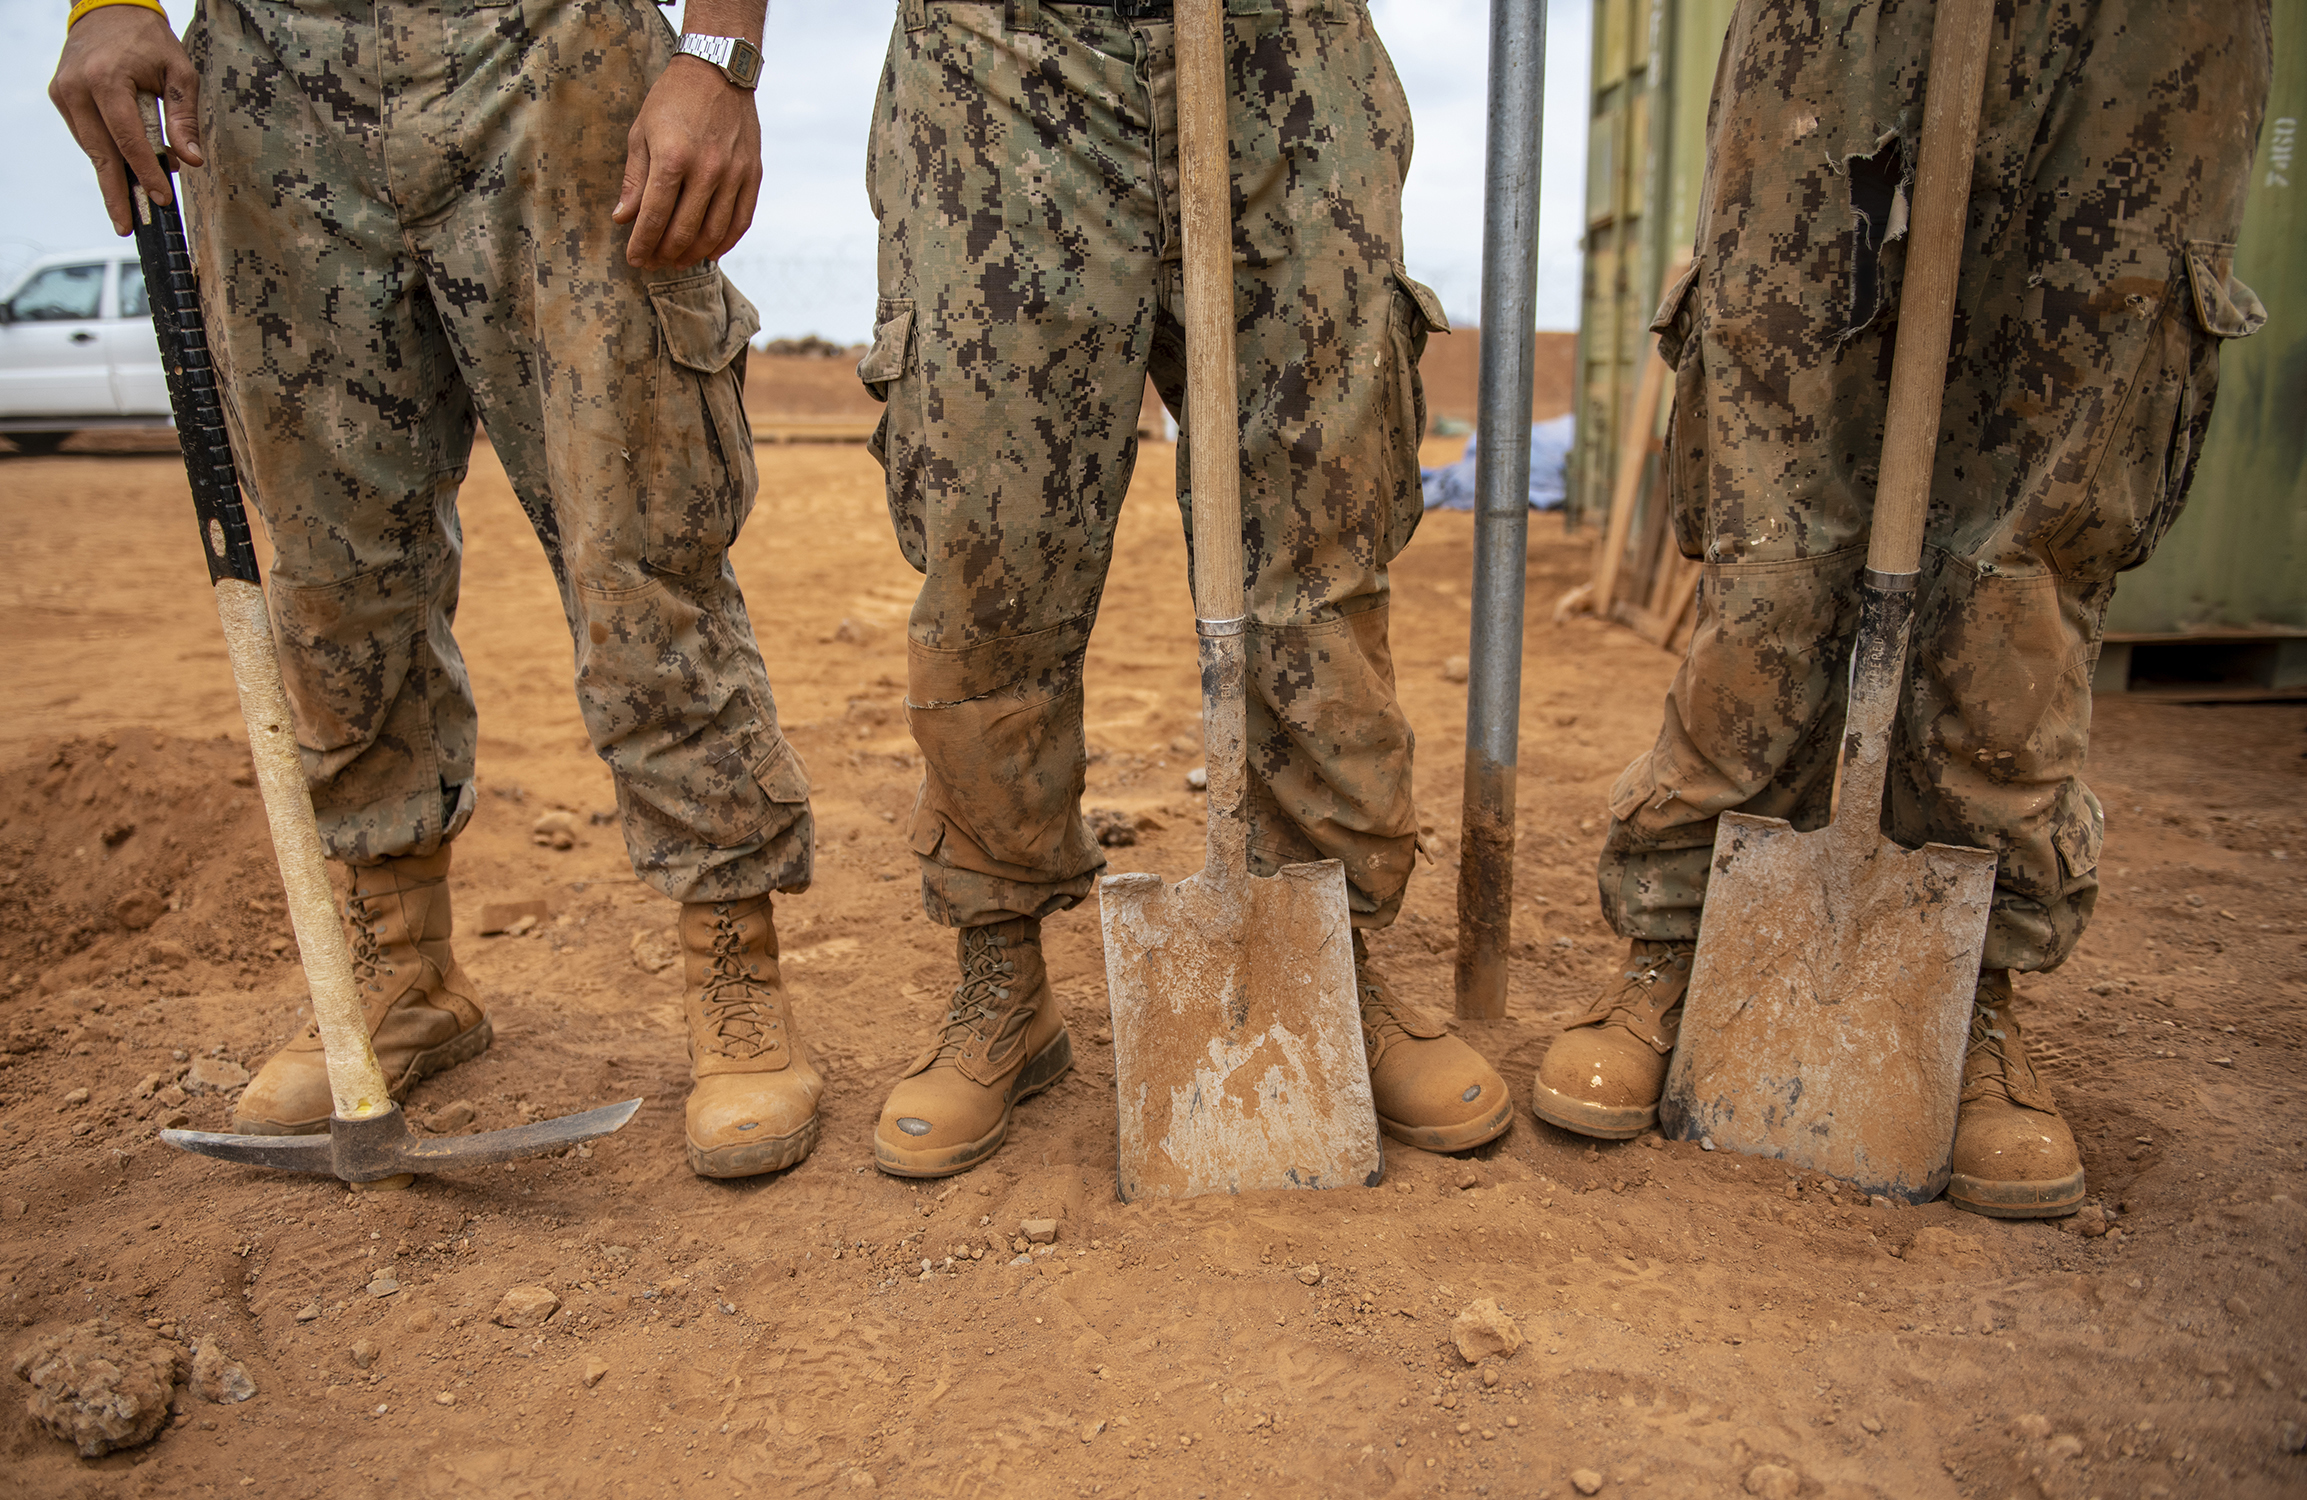 U.S. Navy Seabees assigned to Naval Mobile Construction Battalion 1, Combined Joint Task Force-Horn of Africa, Camp Lemonnier, Djibouti, wait for a piece of heavy equipment while building a fence during the construction of the future Ali Oune, Djibouti, Women's Medical Clinic, Dec. 27, 2018. The clinic is intended to enhance the Ministry of Health for Djibouti's ability to provide basic medical, birth and after care to the Ali Oune village and its more than 1,000 residents and rural neighbors. (U.S. Air Force photo by Tech. Sgt. Shawn Nickel)